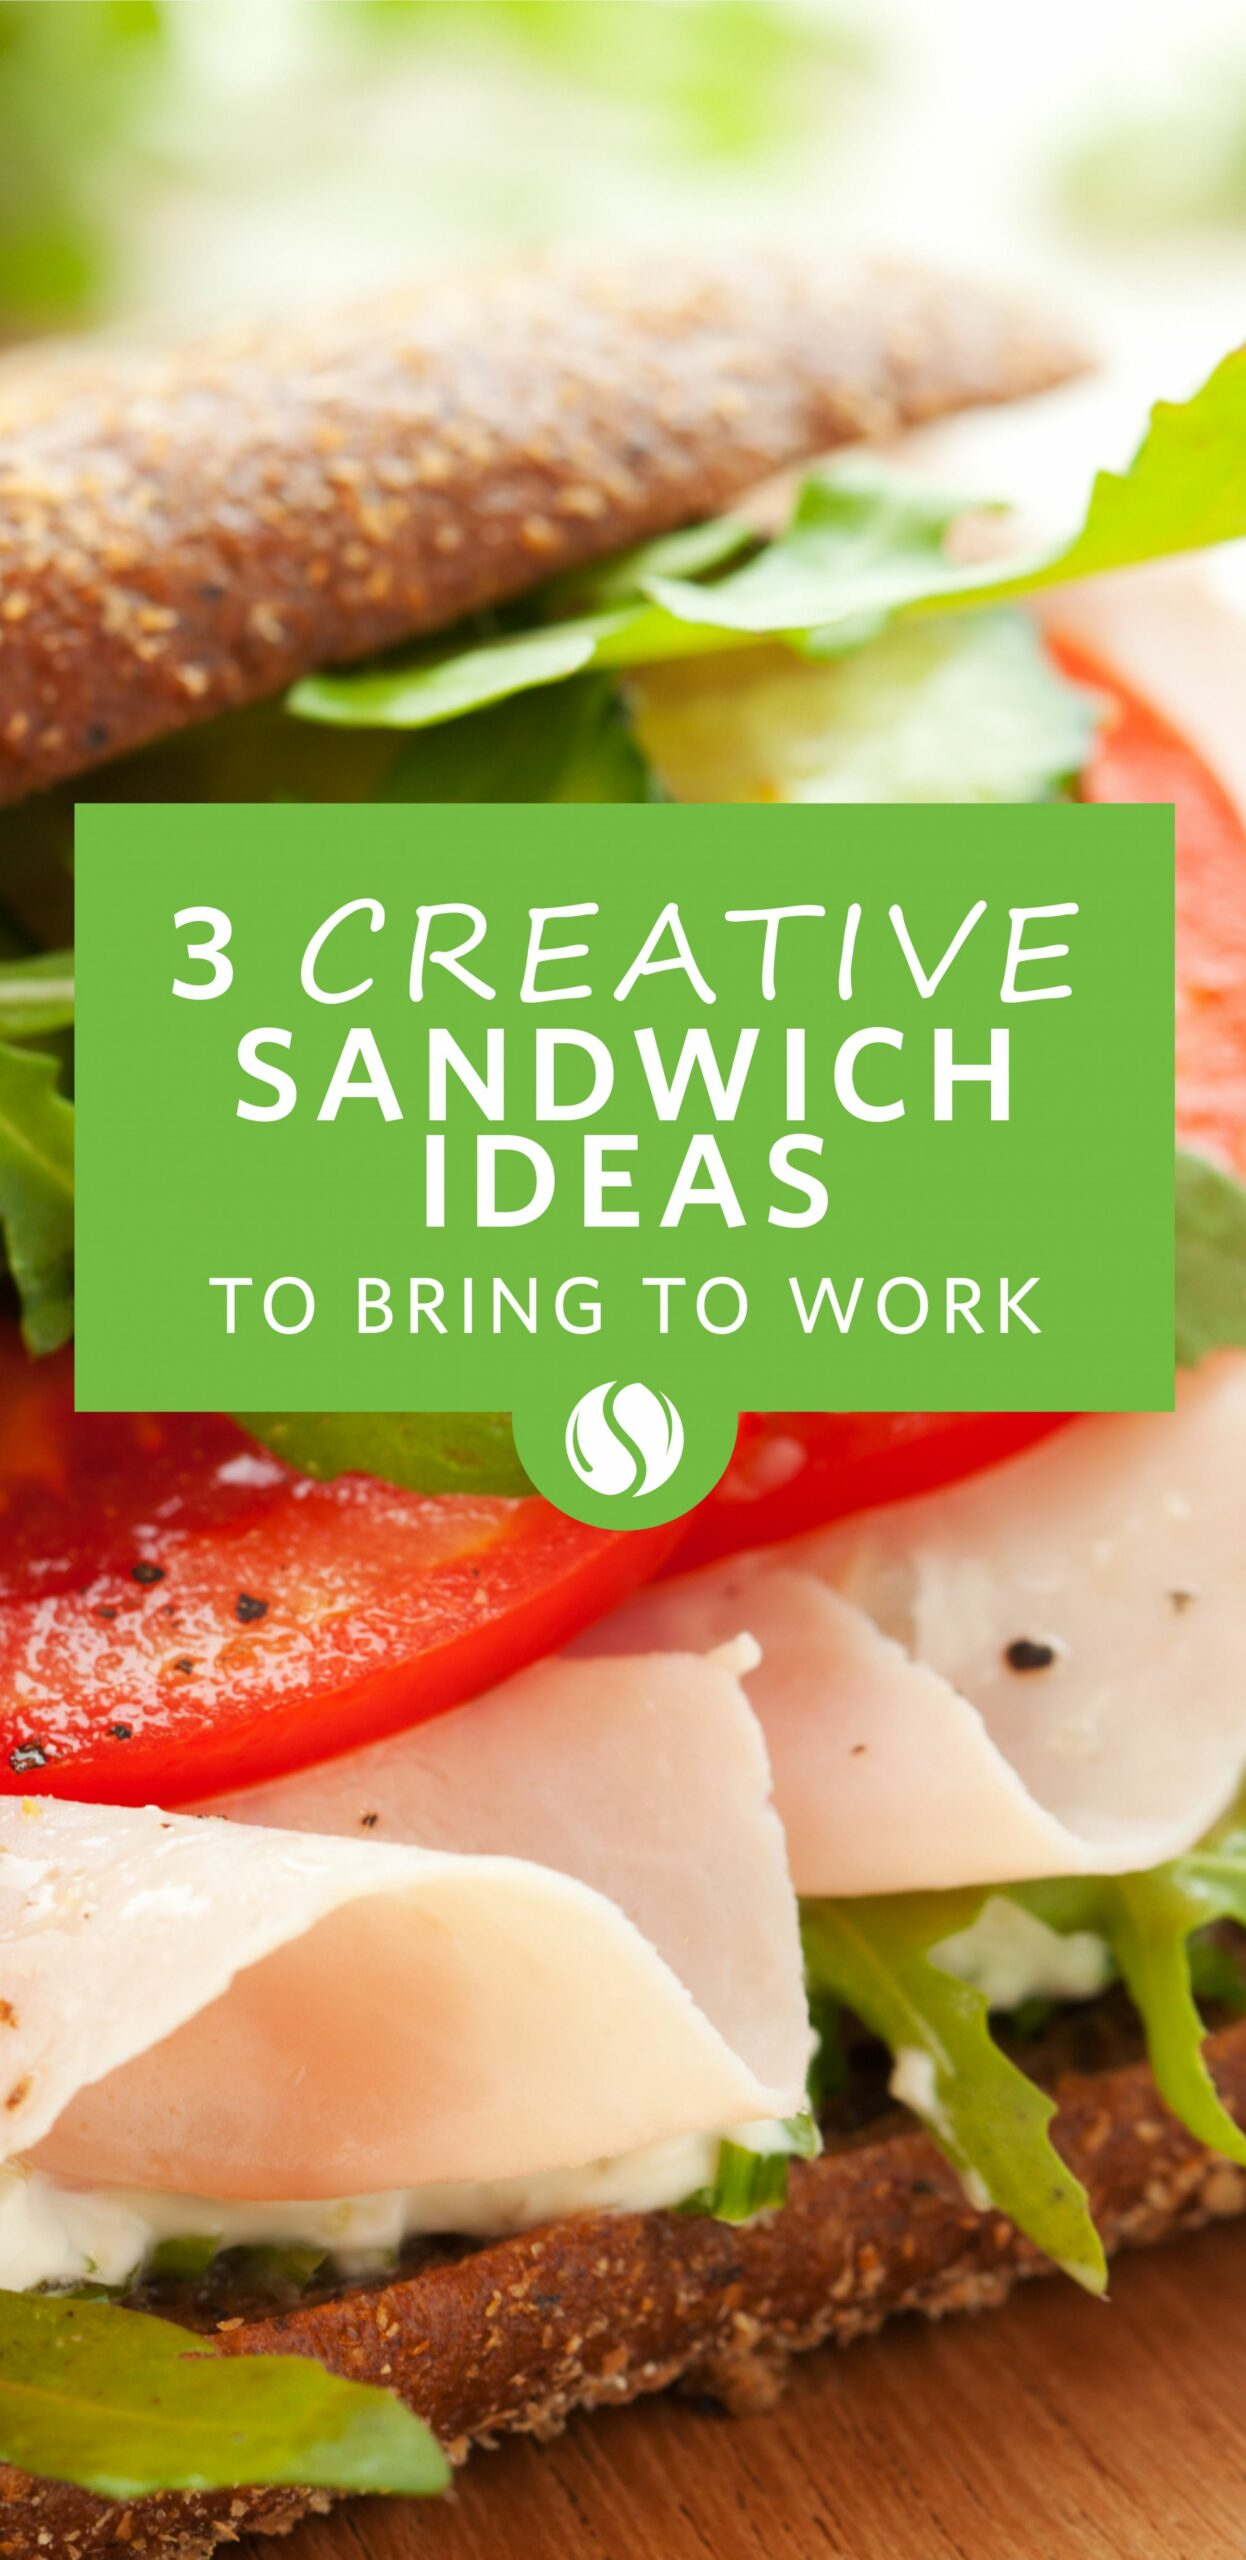 12 Creative Sandwich Ideas To Bring To Work   Healthy, Cooking ..